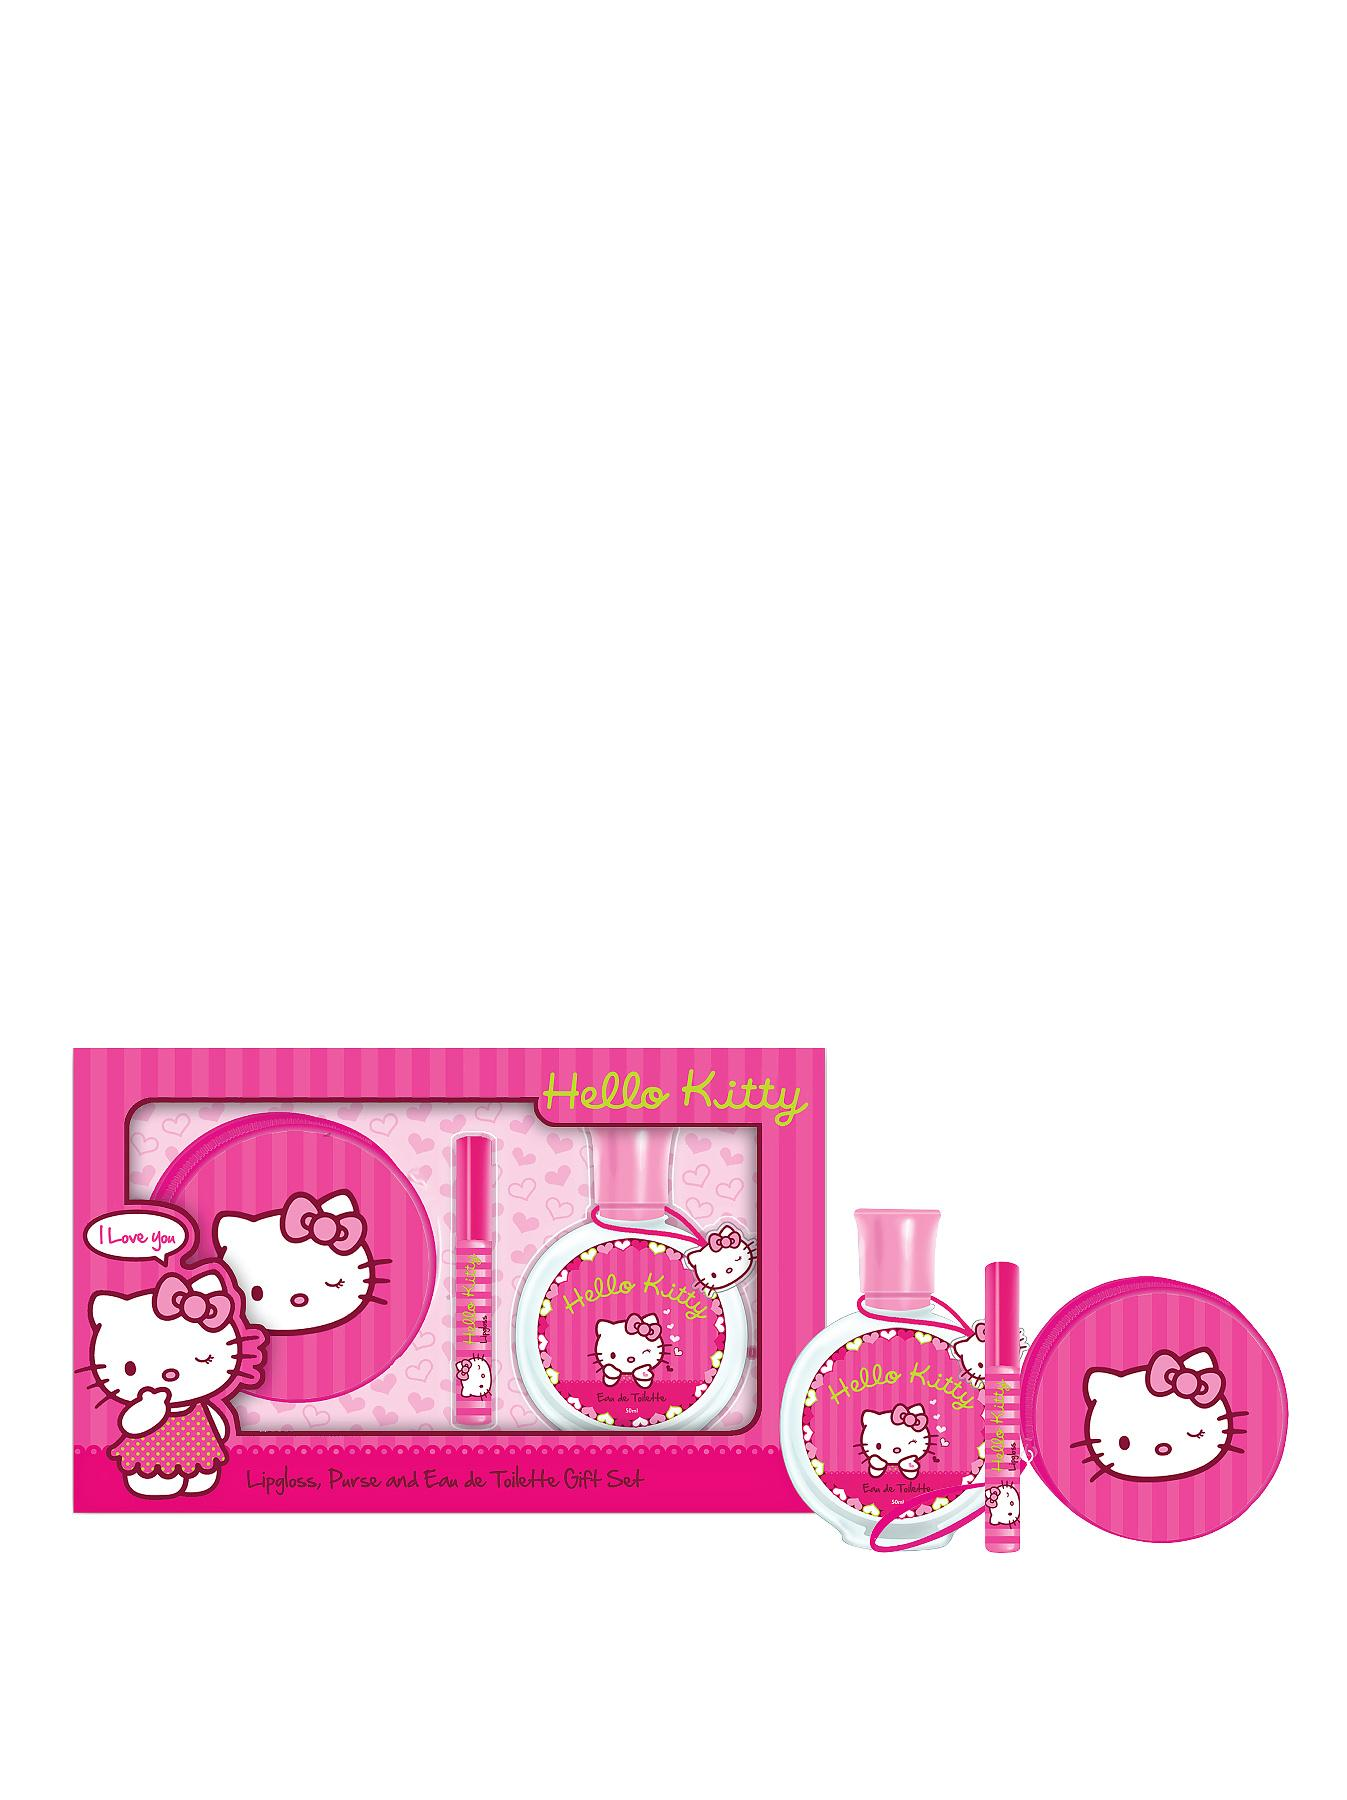 Hello Kitty Fragrance and Purse Gift Set